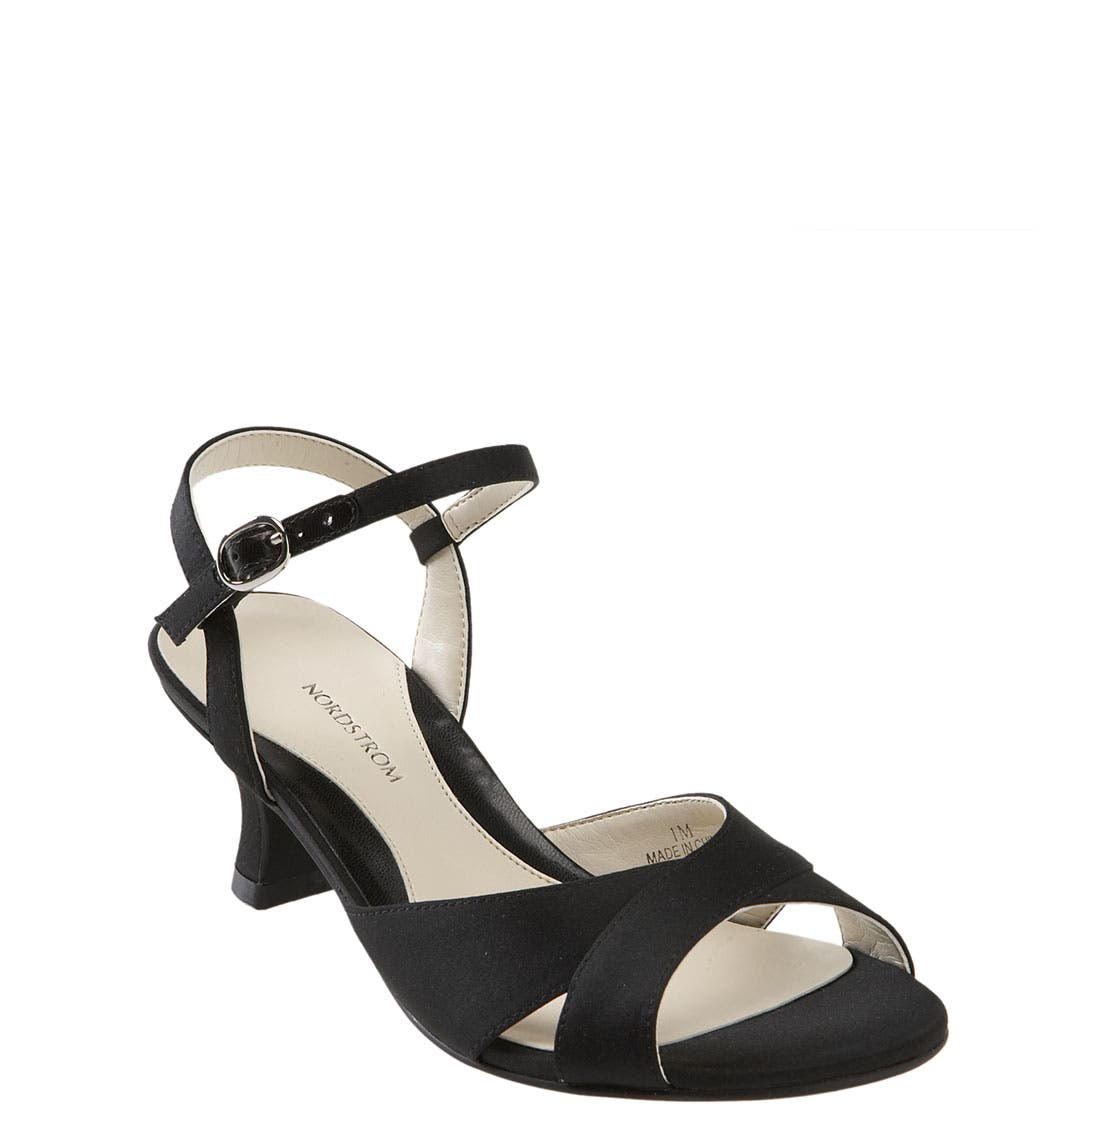 Alternate Image 1 Selected - Nordstrom 'Erin' Sandal (Toddler, Little Kid & Big Kid)